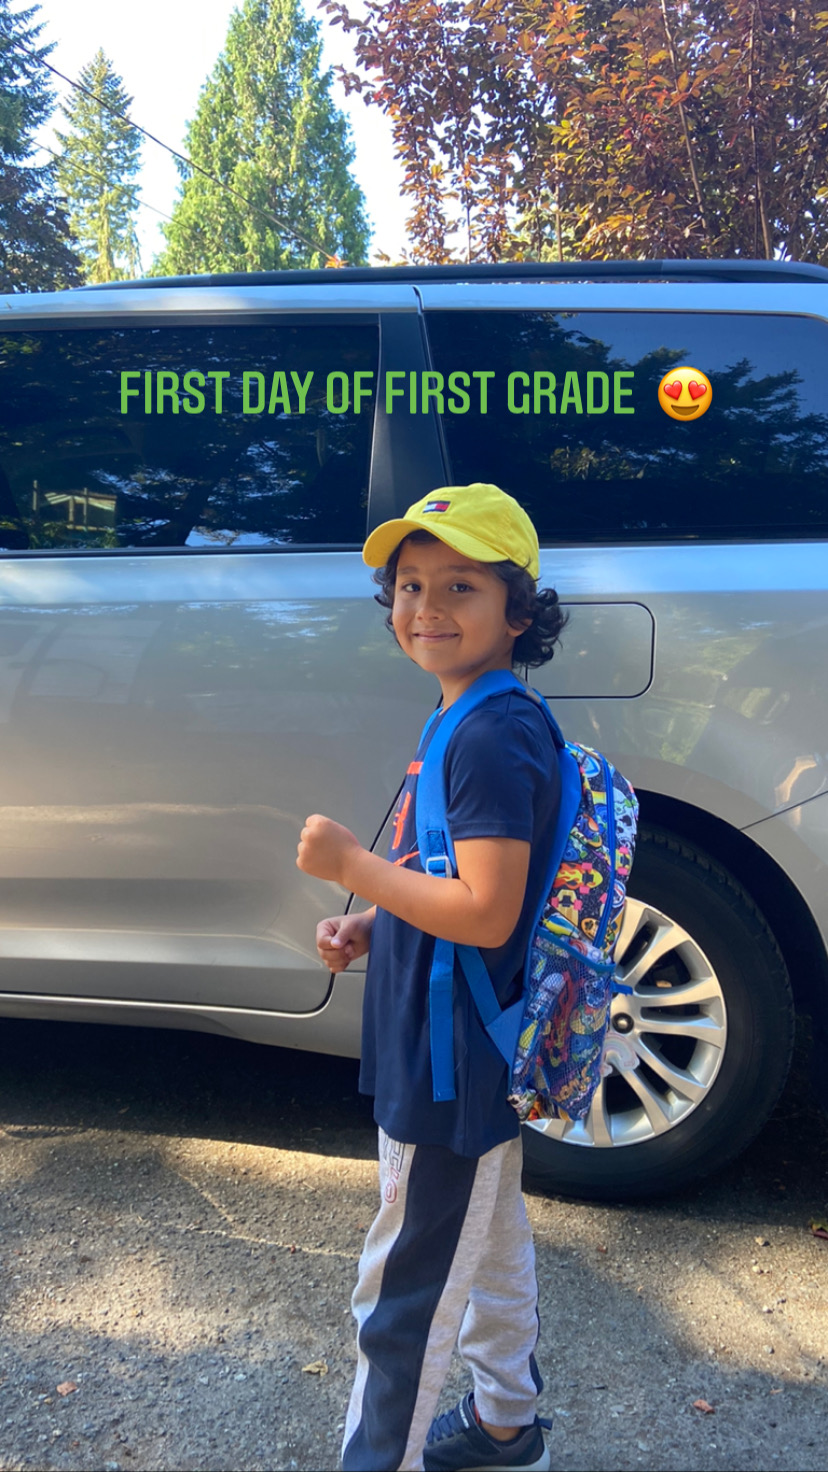 a student smiling with text on the photo that says first day of first grade